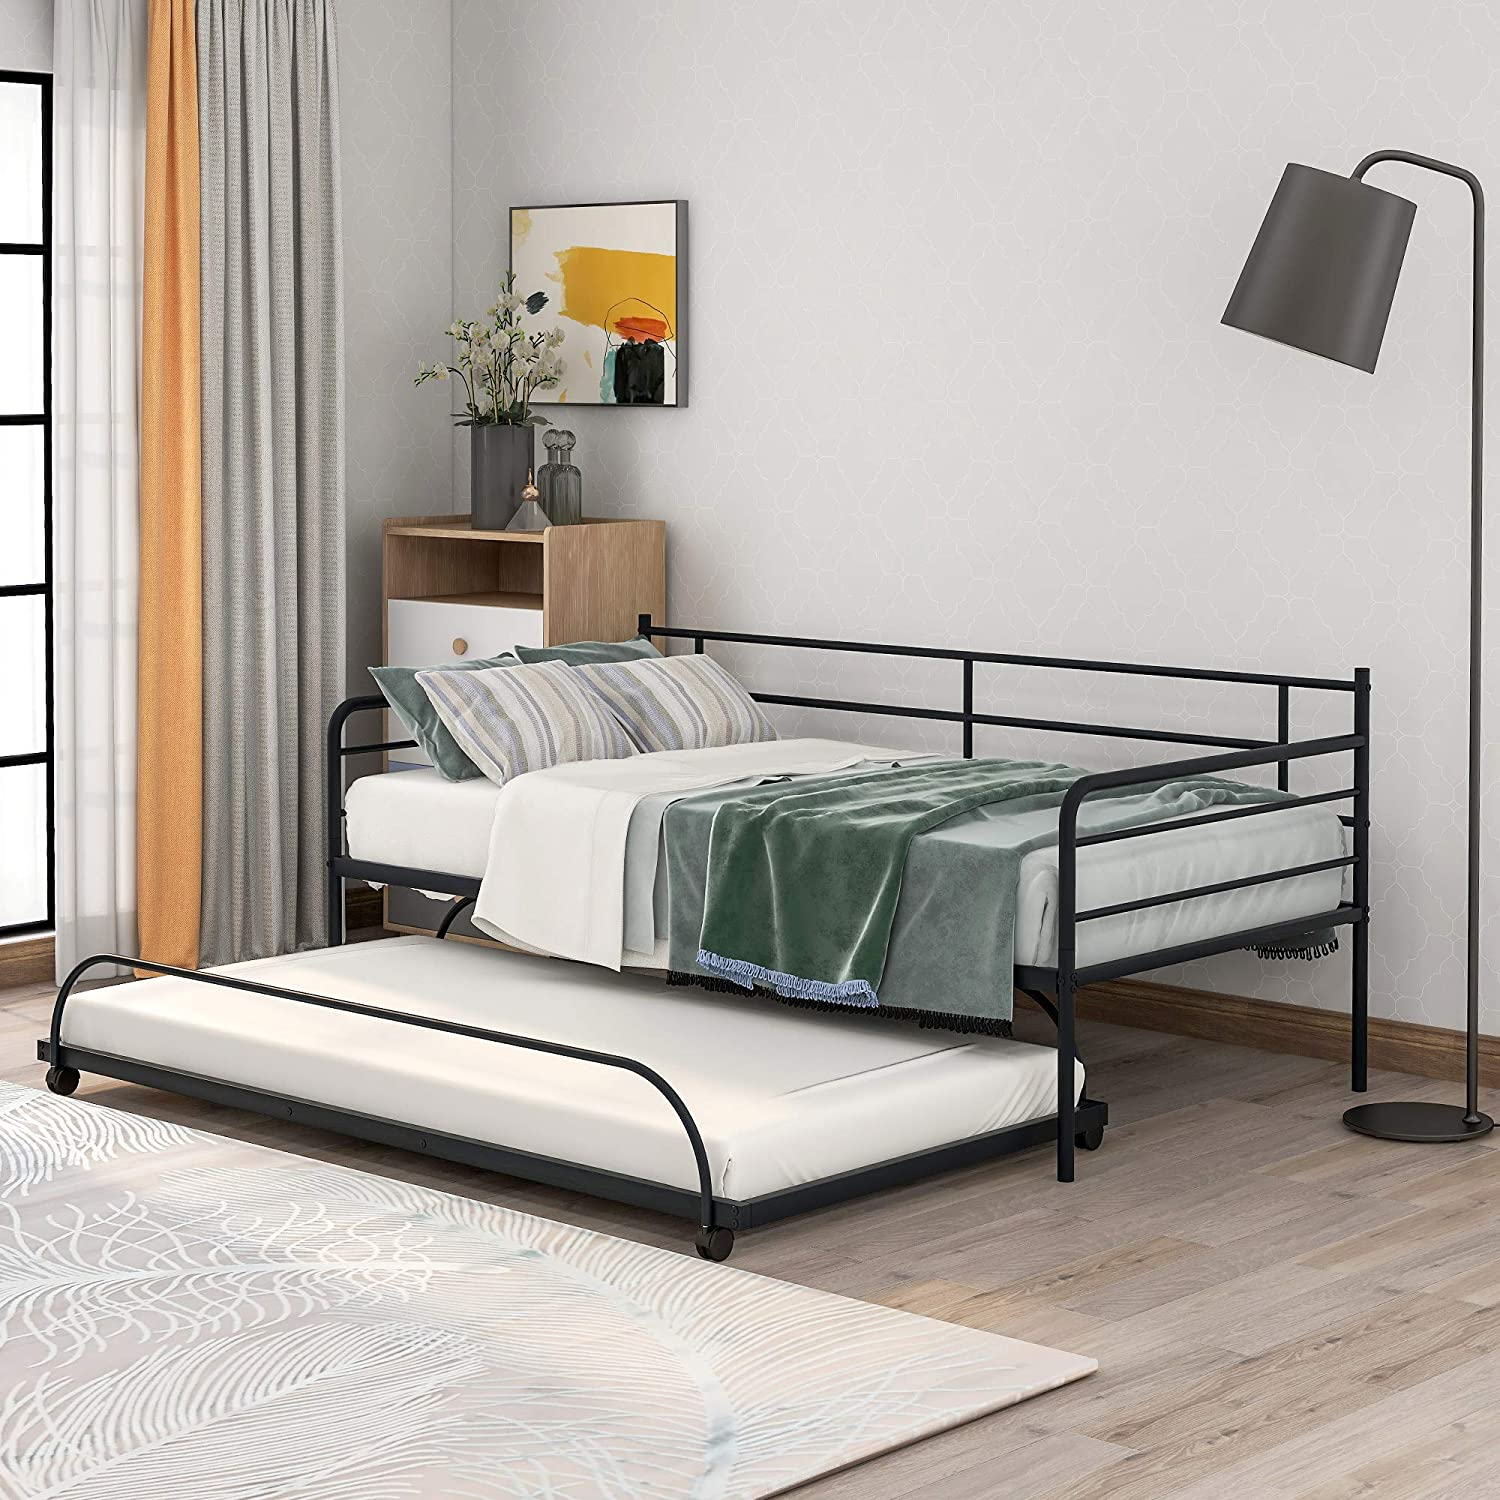 Knocbel Contemporary Metal Daybed Twin Platform Bed Frame Mattress Foundation with Trundle, 220 Lbs Capacity (Black)